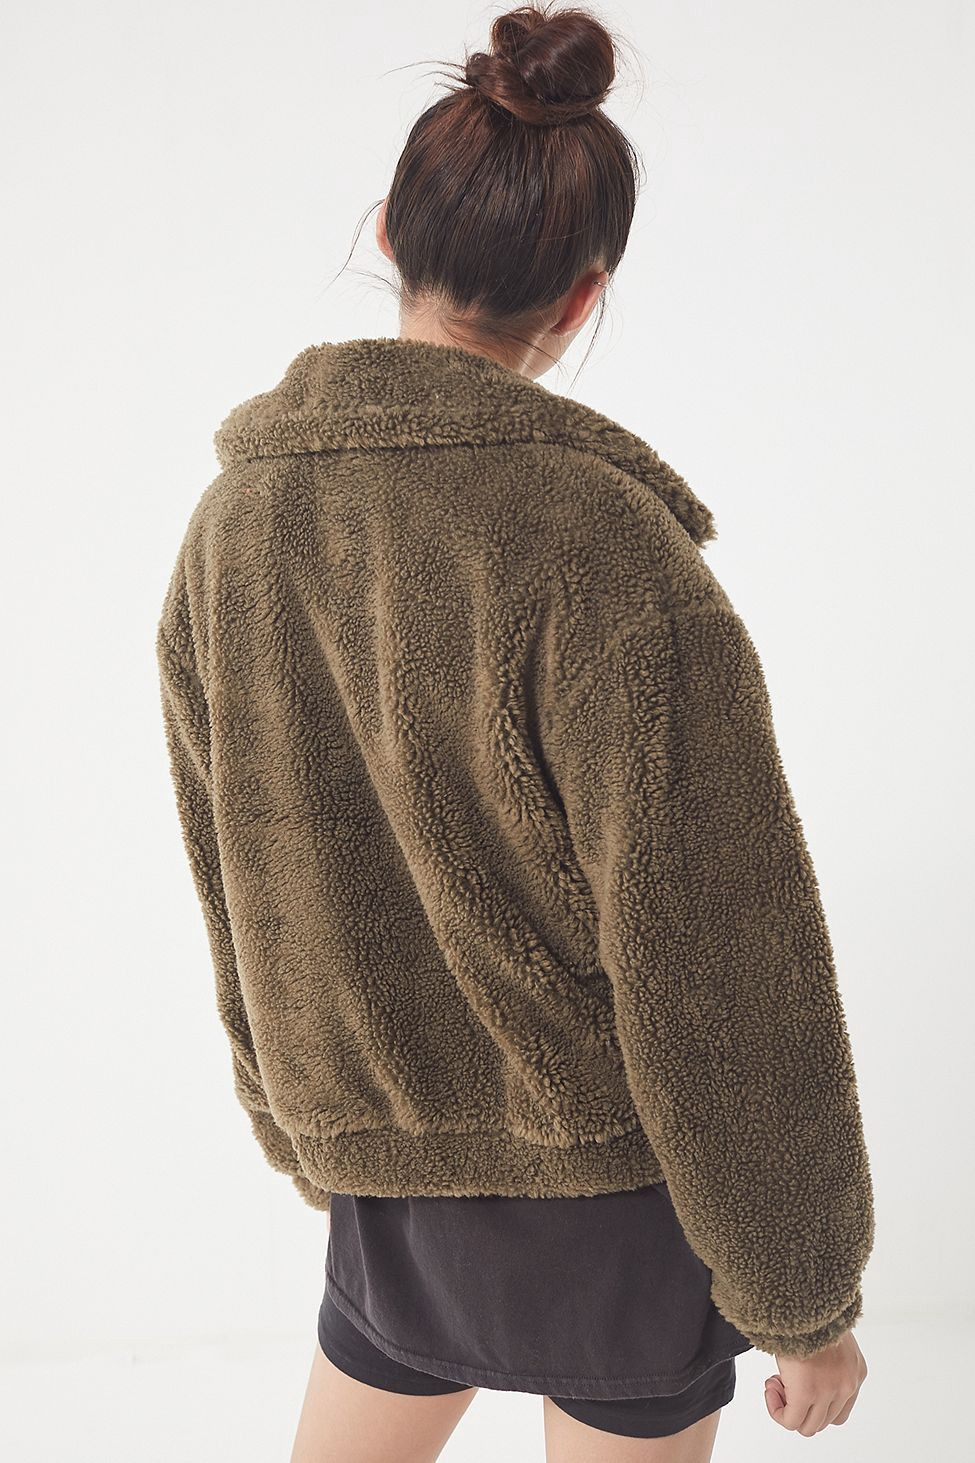 Uo Cropped Teddy Jacket By Urban Outfitters Products Pinterest